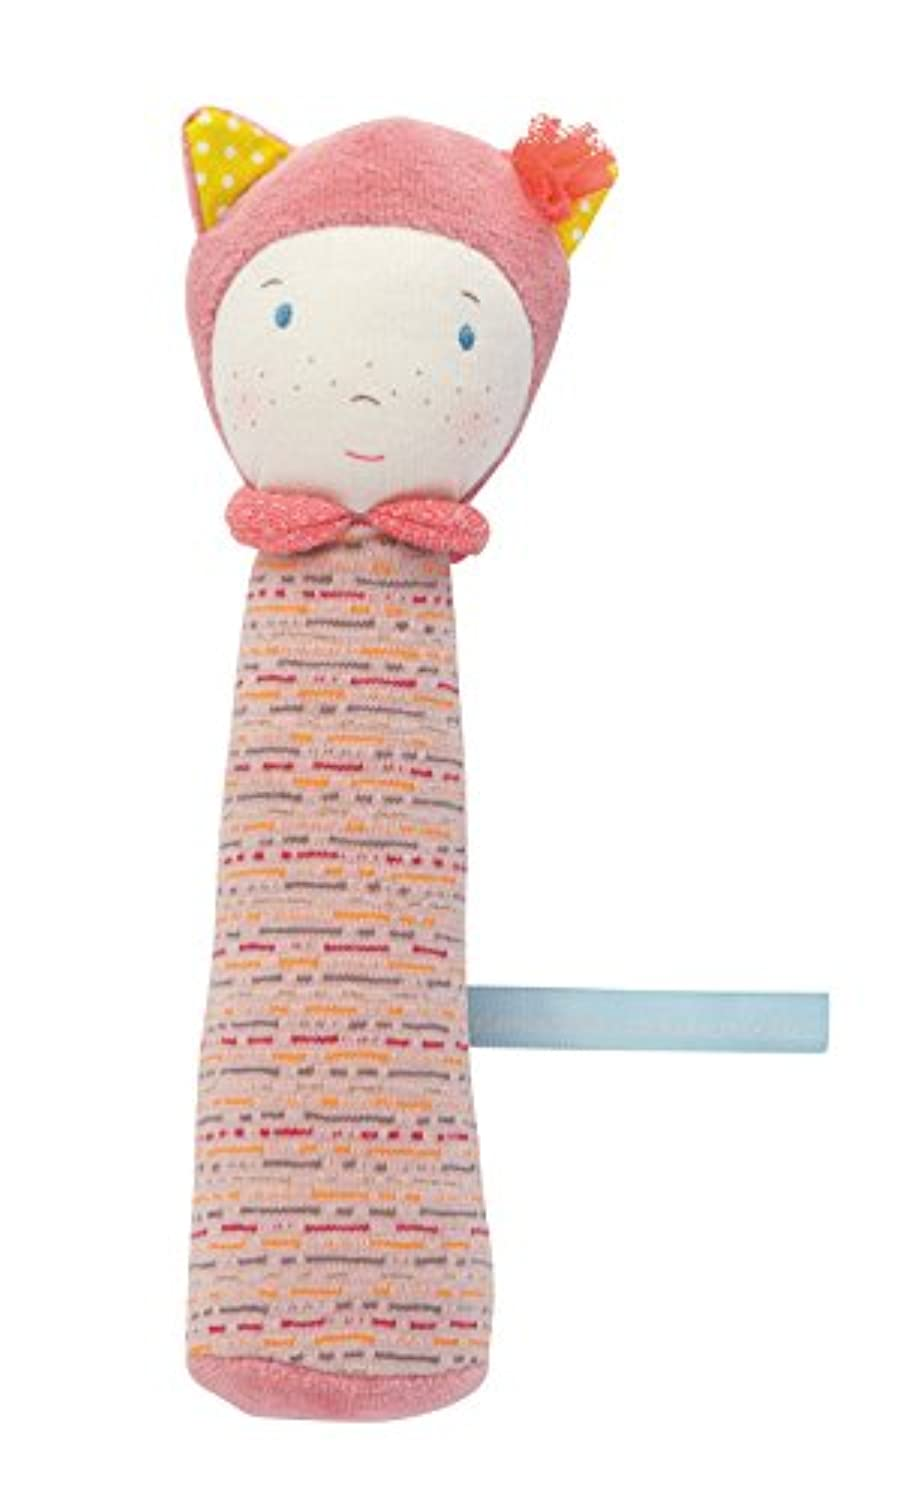 Moulin Roty 's – Mademoiselle Squeaker